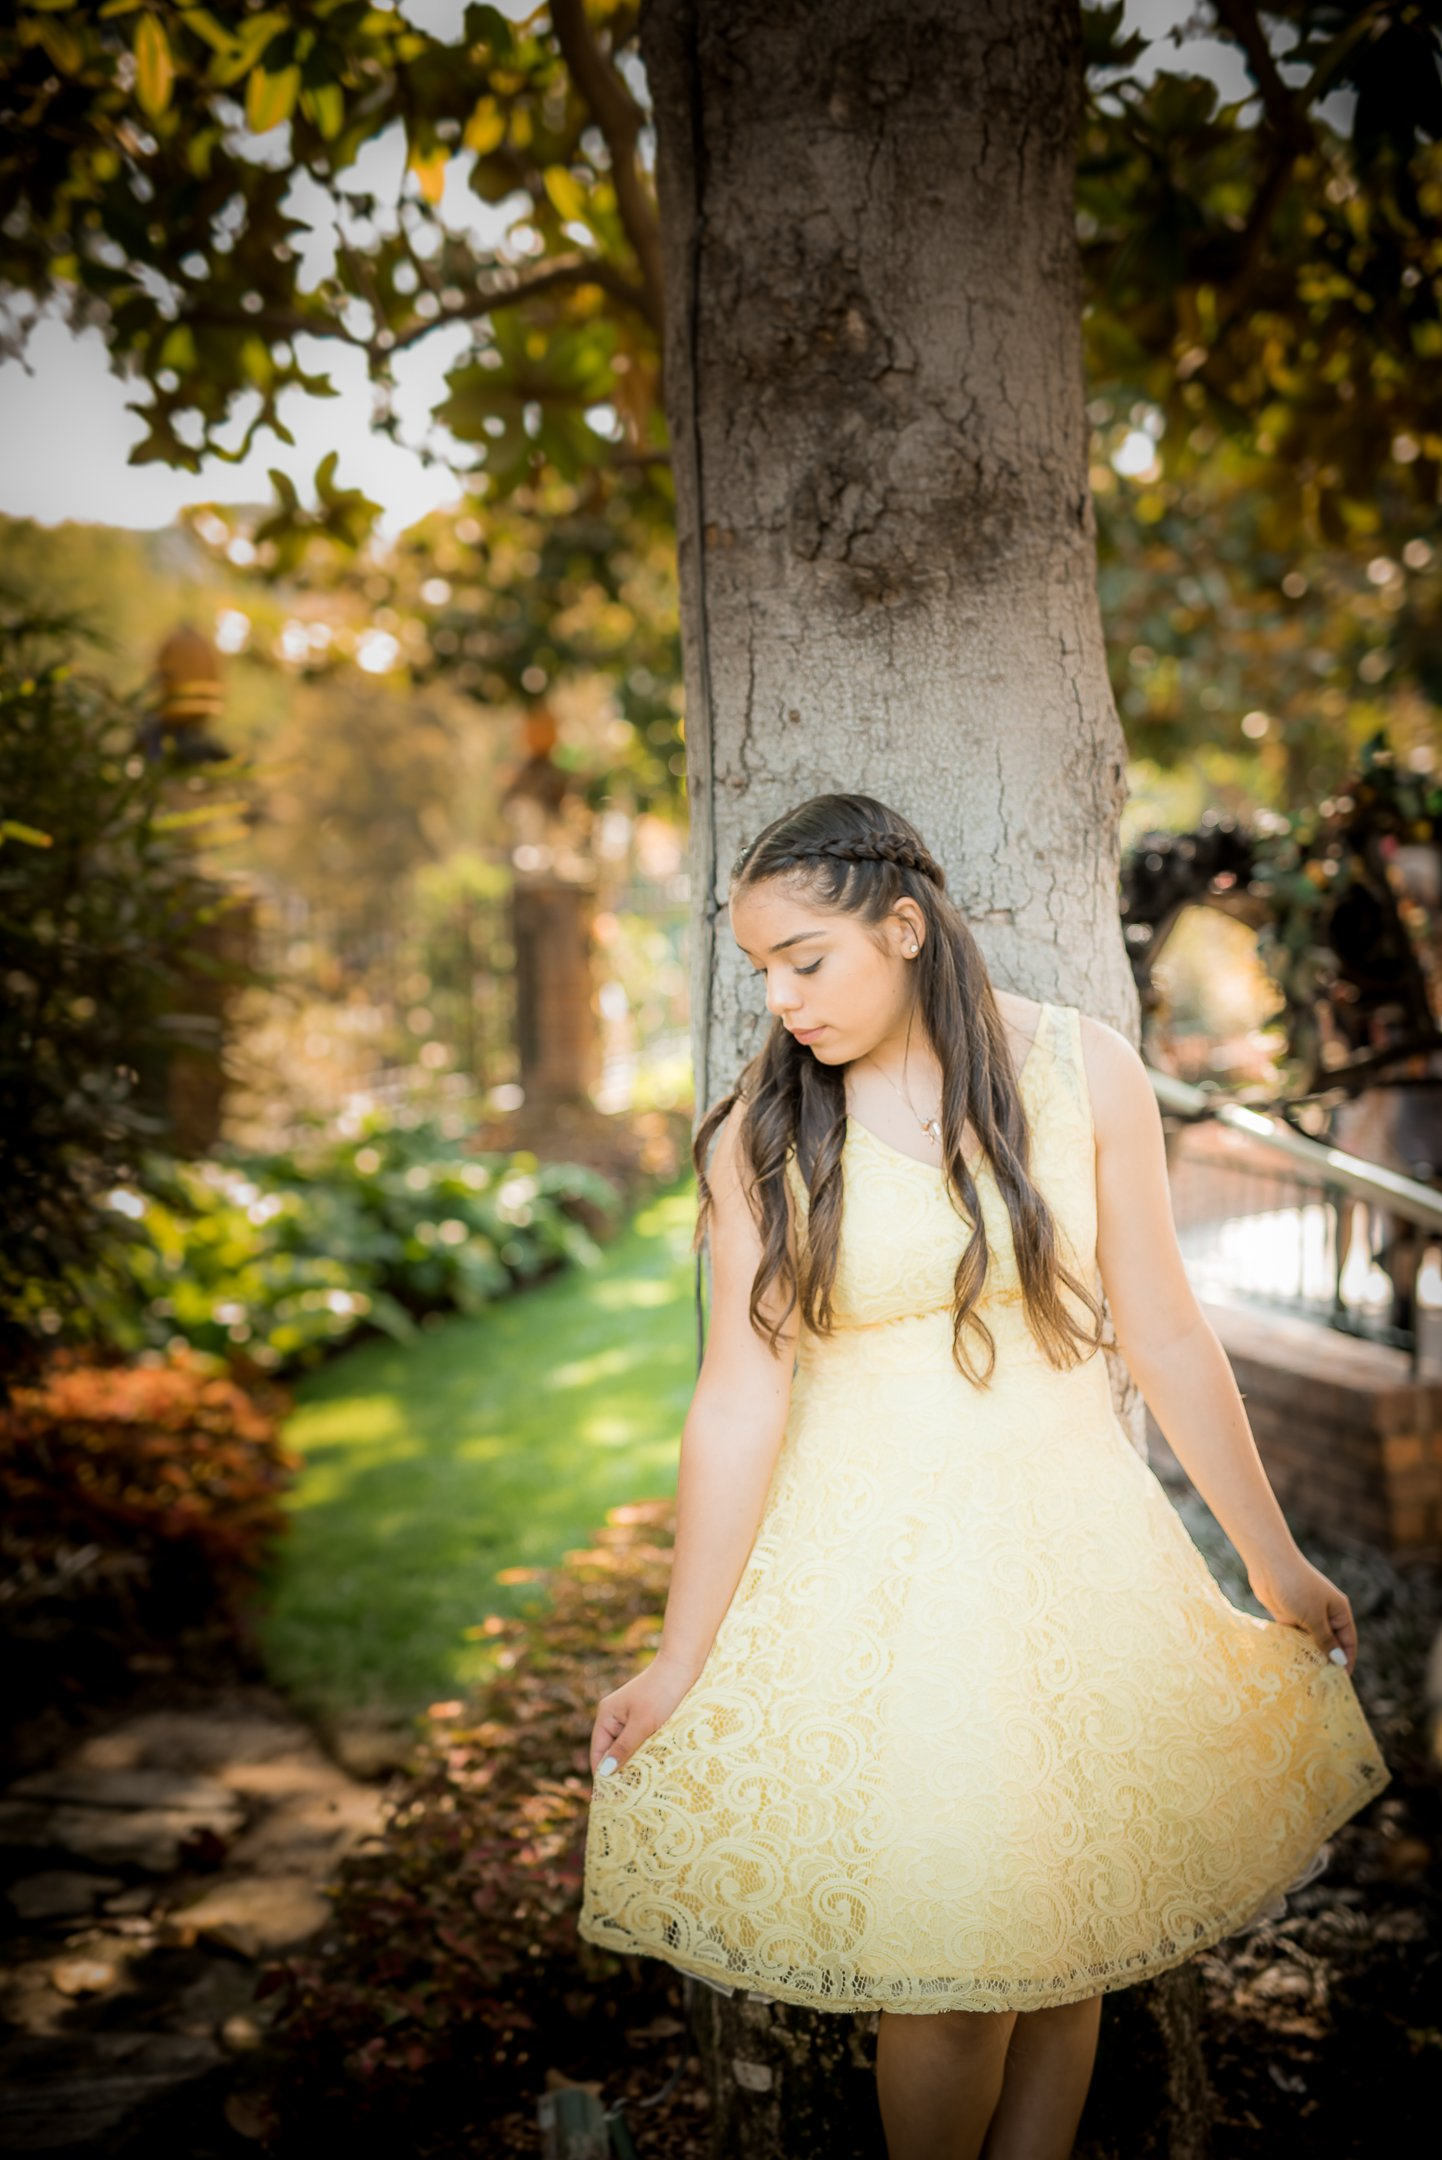 Disneyland Quinceanera photo session - By the Haunted Mansion in Disneyland, CA